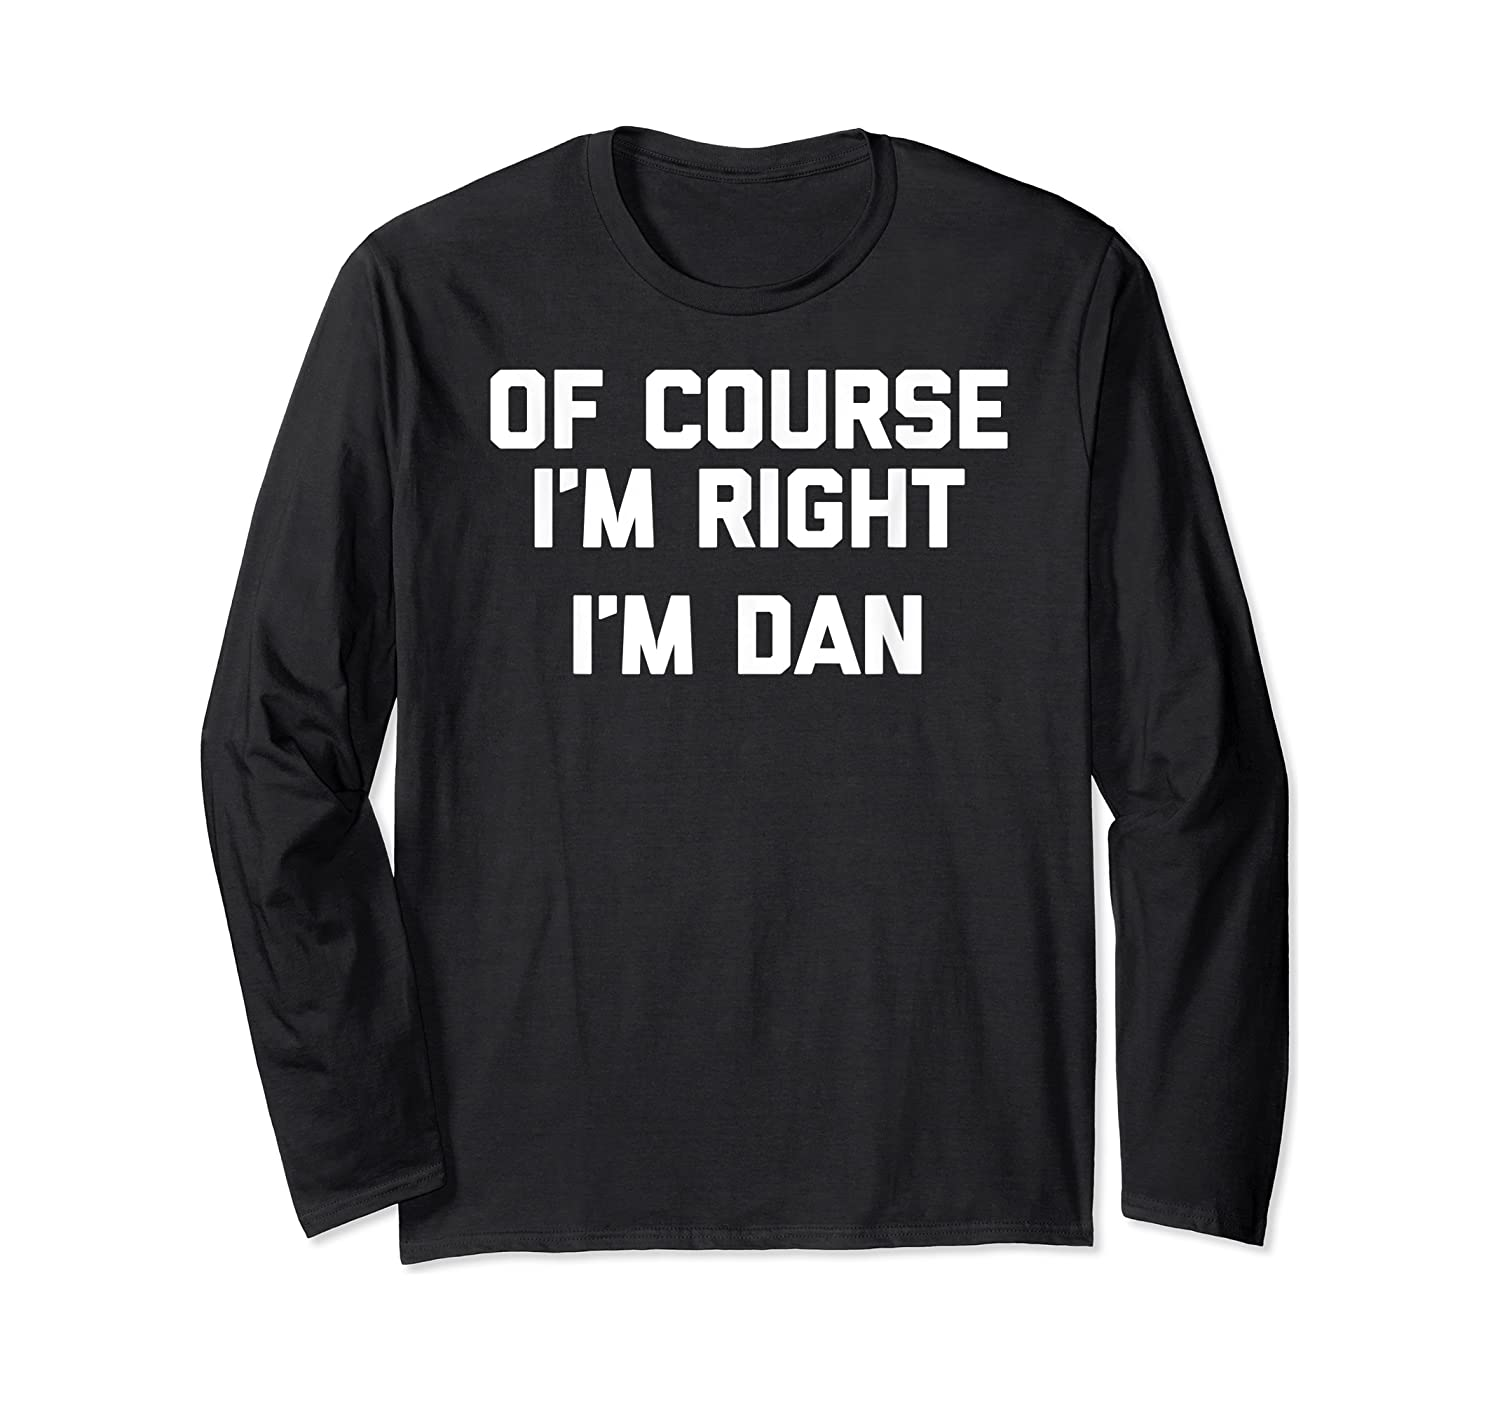 Of Course I'm Right, I'm Dan T-shirt Funny Saying Sarcastic Long Sleeve T-shirt